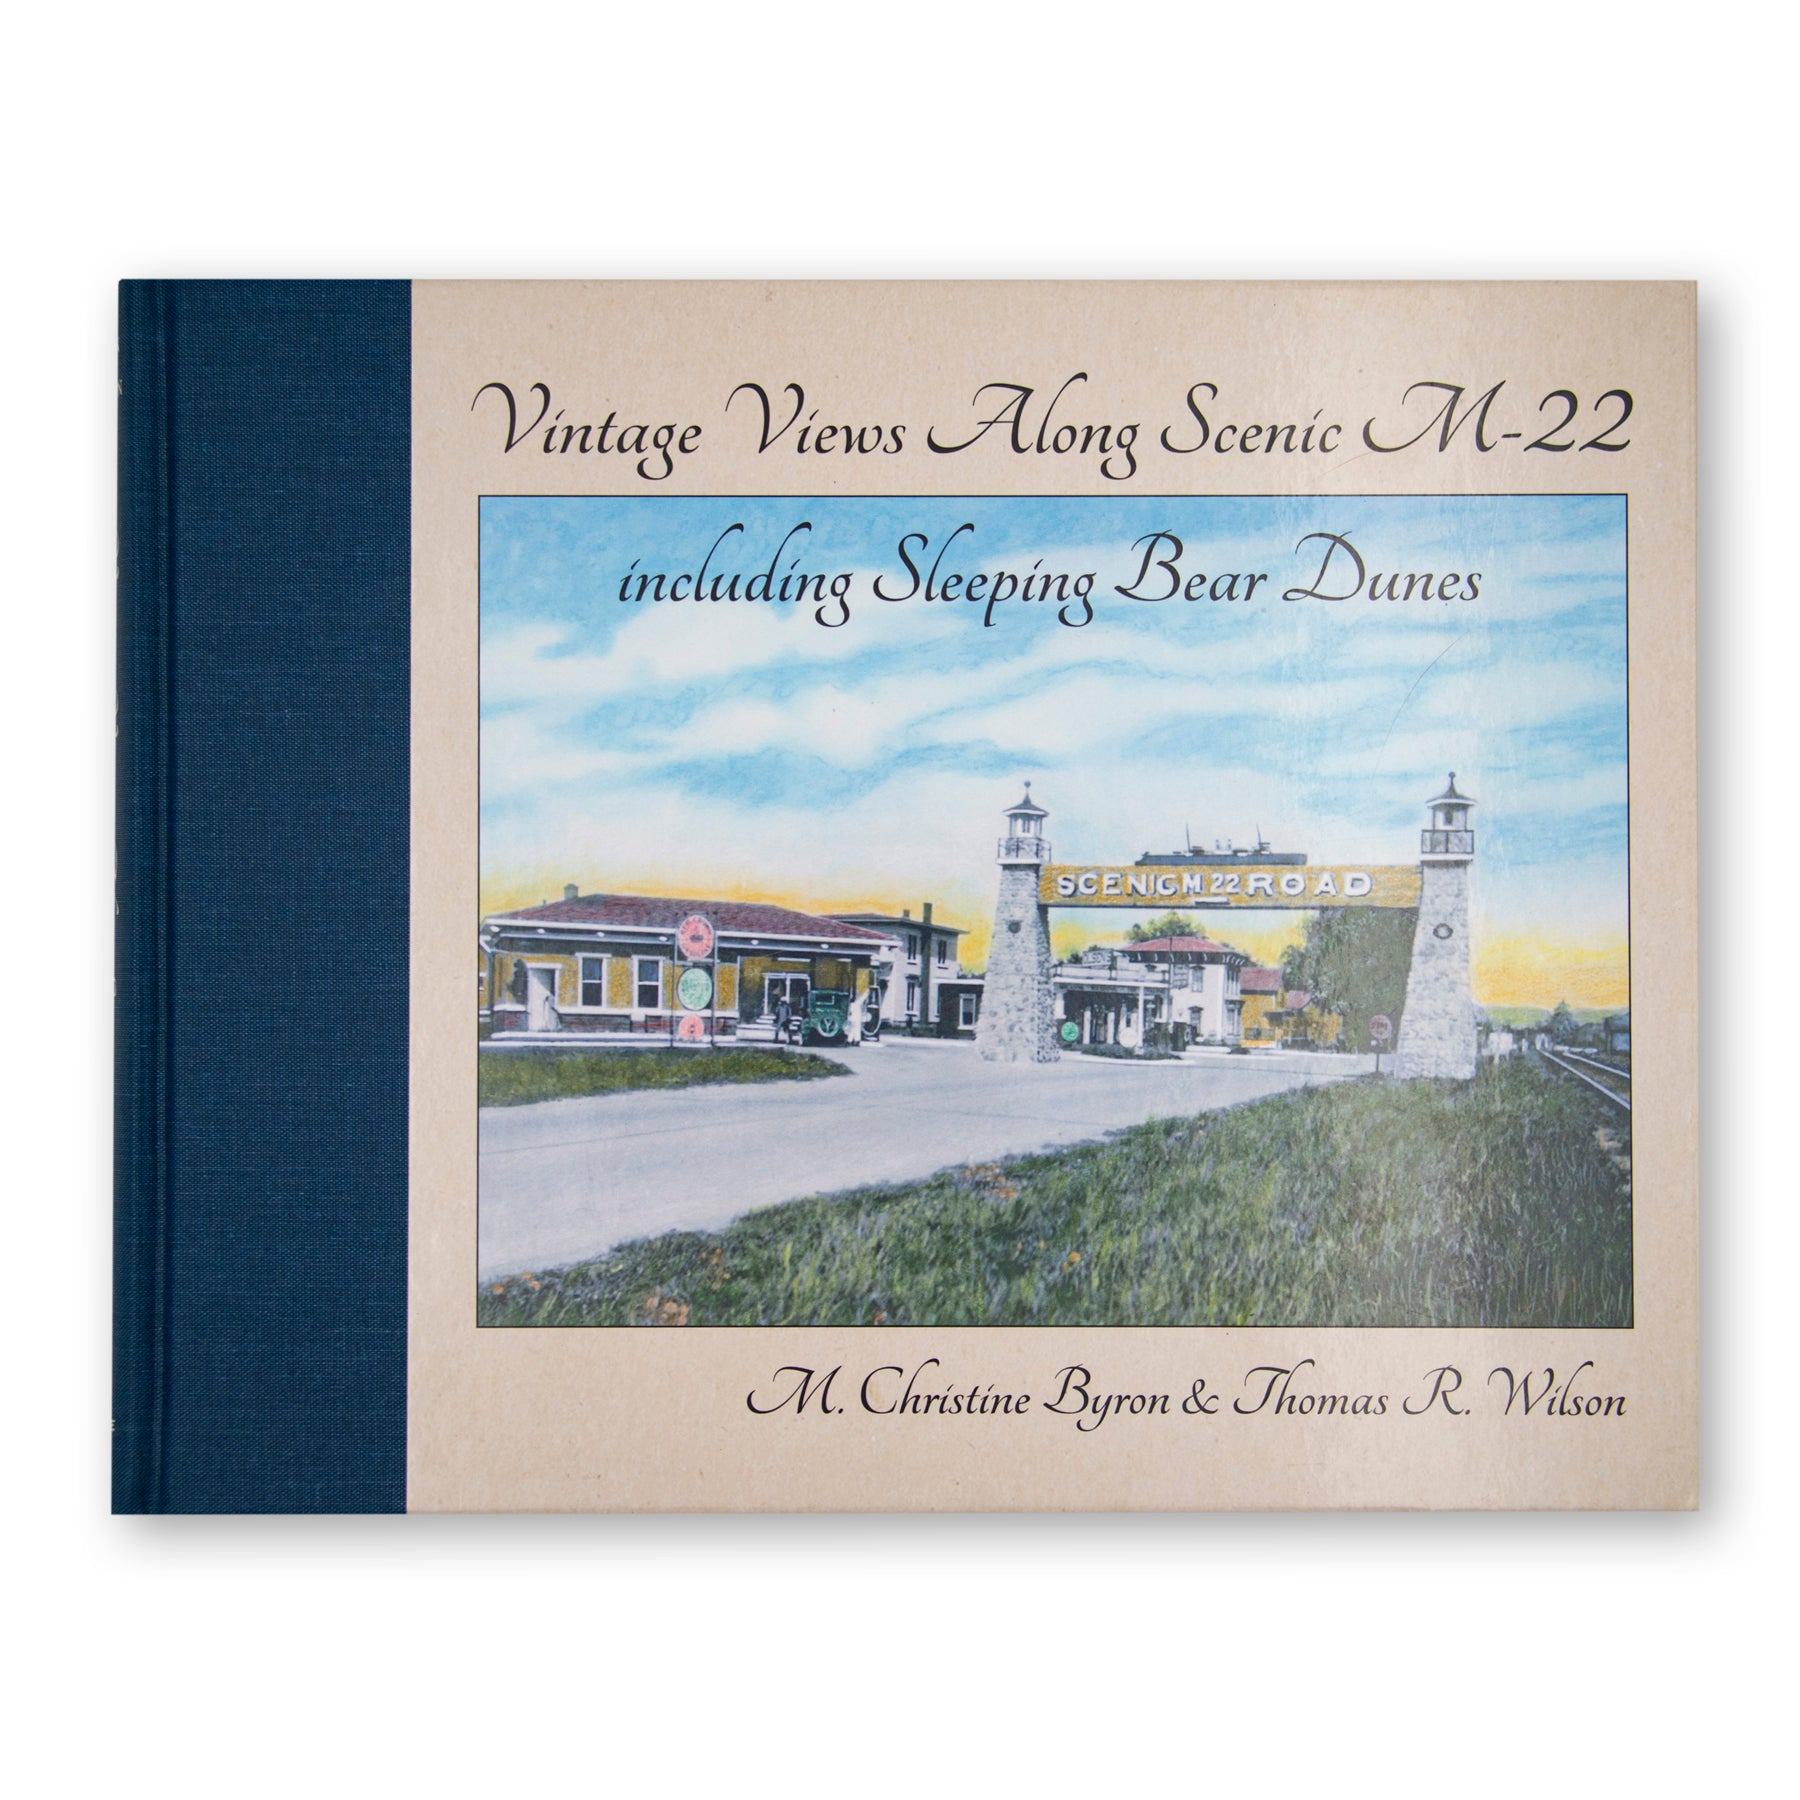 Vintage Views Along Scenic M-22 Book